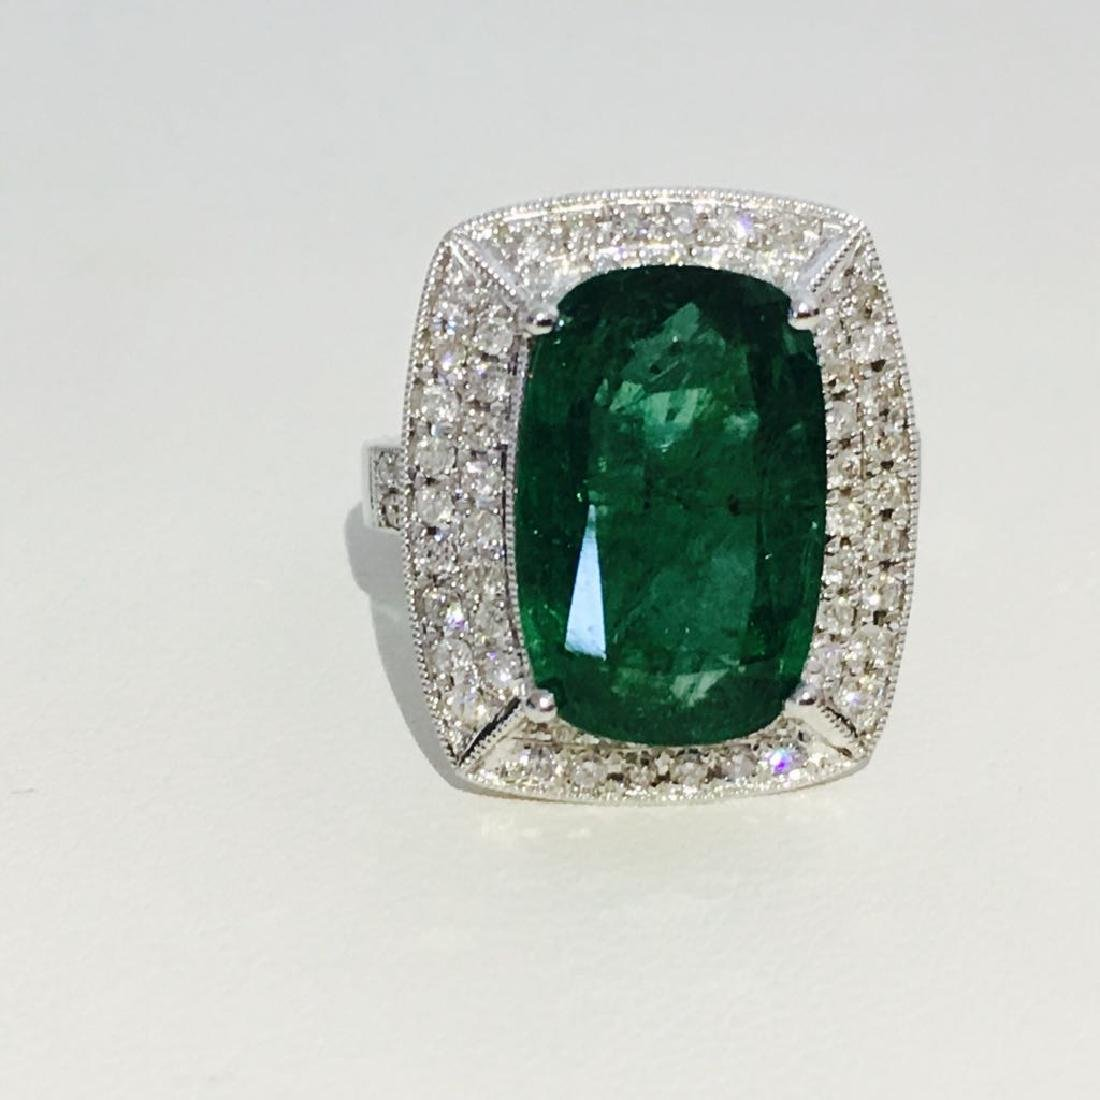 14K Gold, 100% natural 7.25 CT Emerald and Diamond Ring